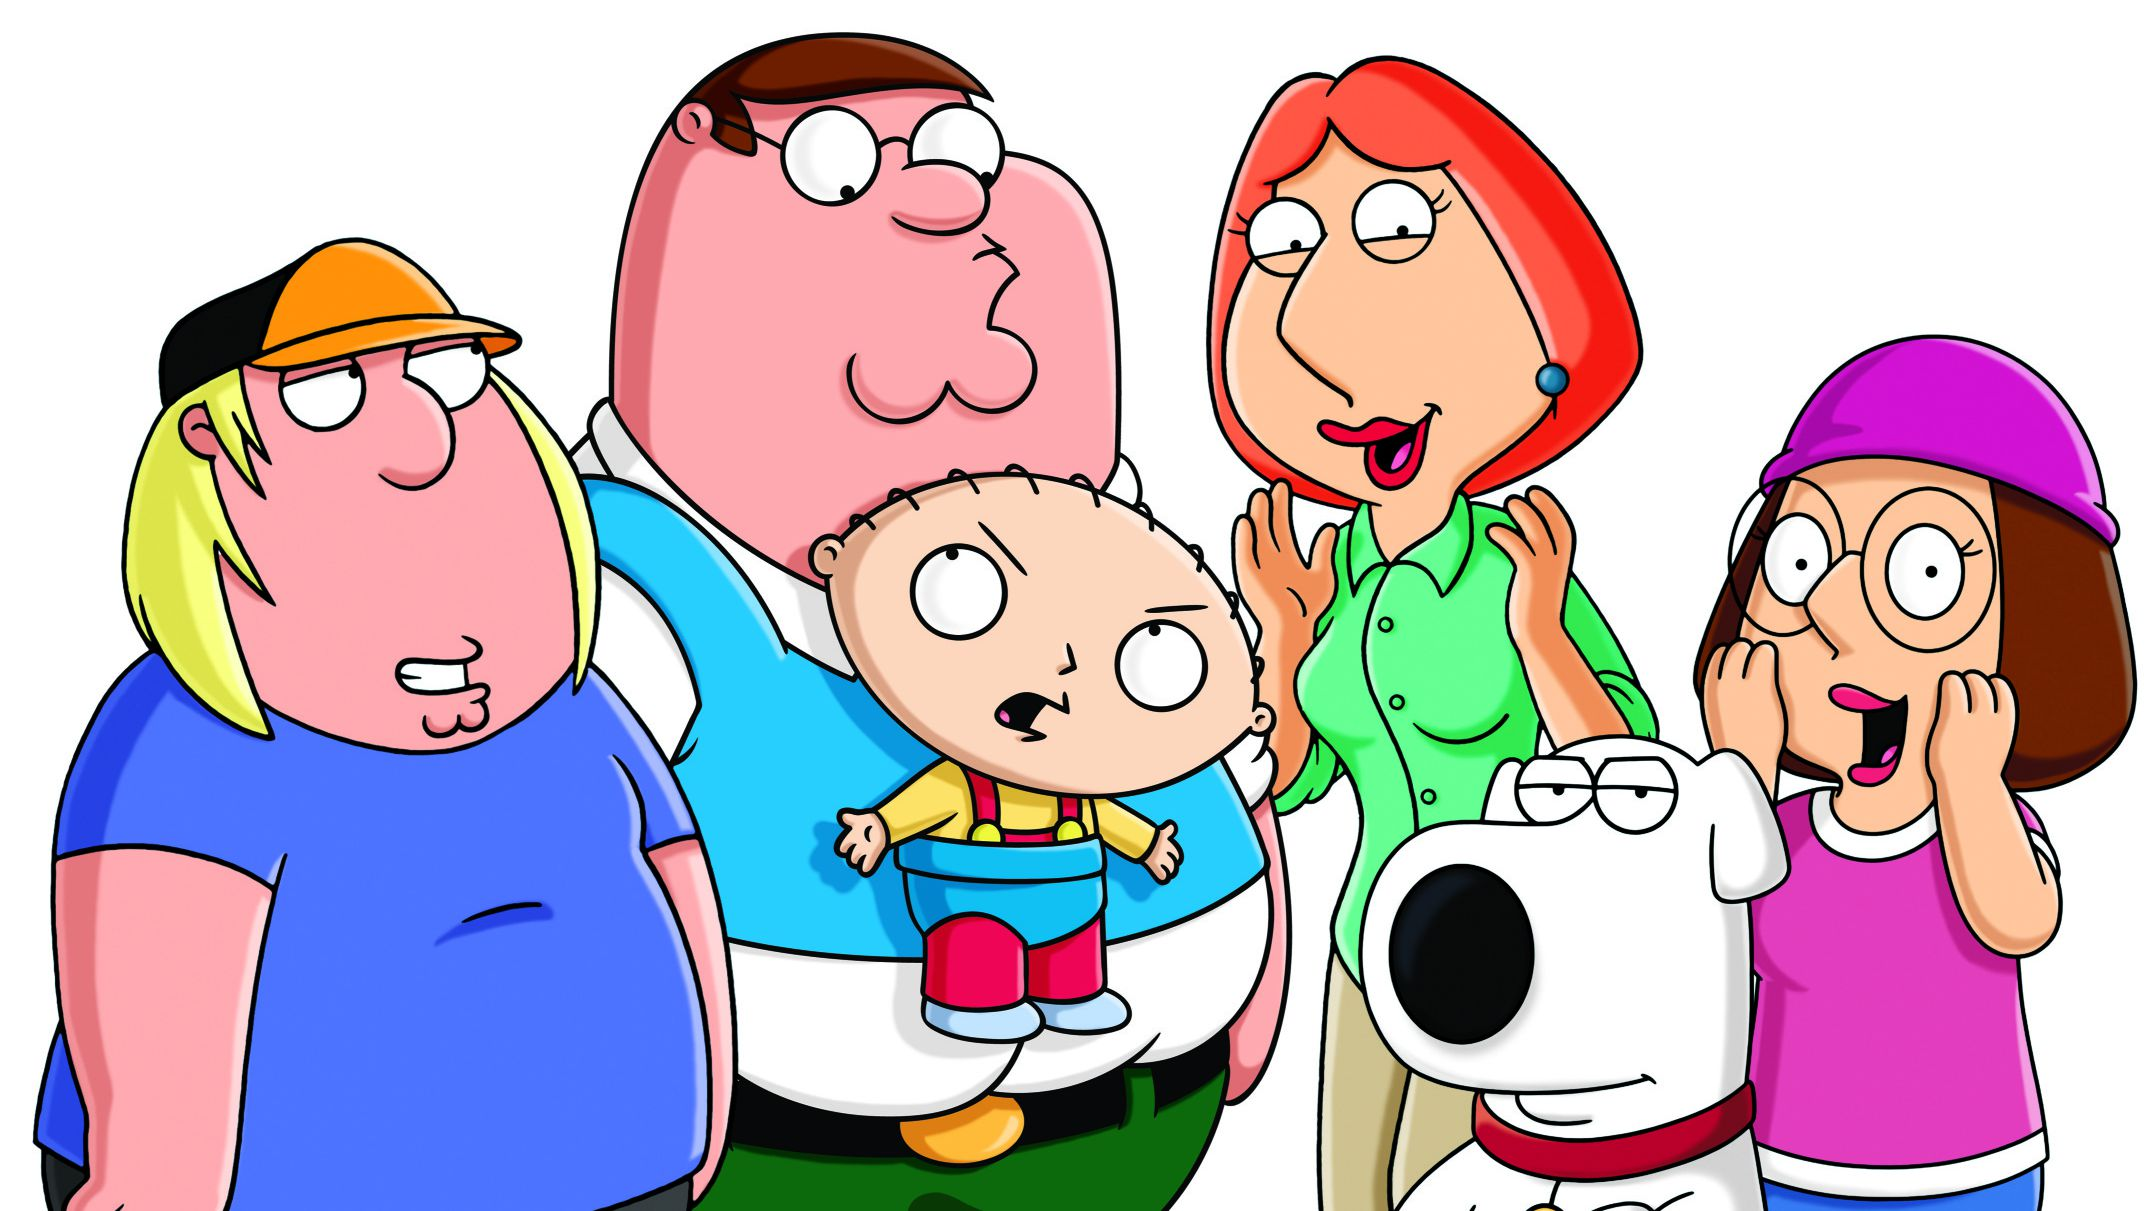 American Dad Sex Game 25 'family guy' guest stars who will surprise you